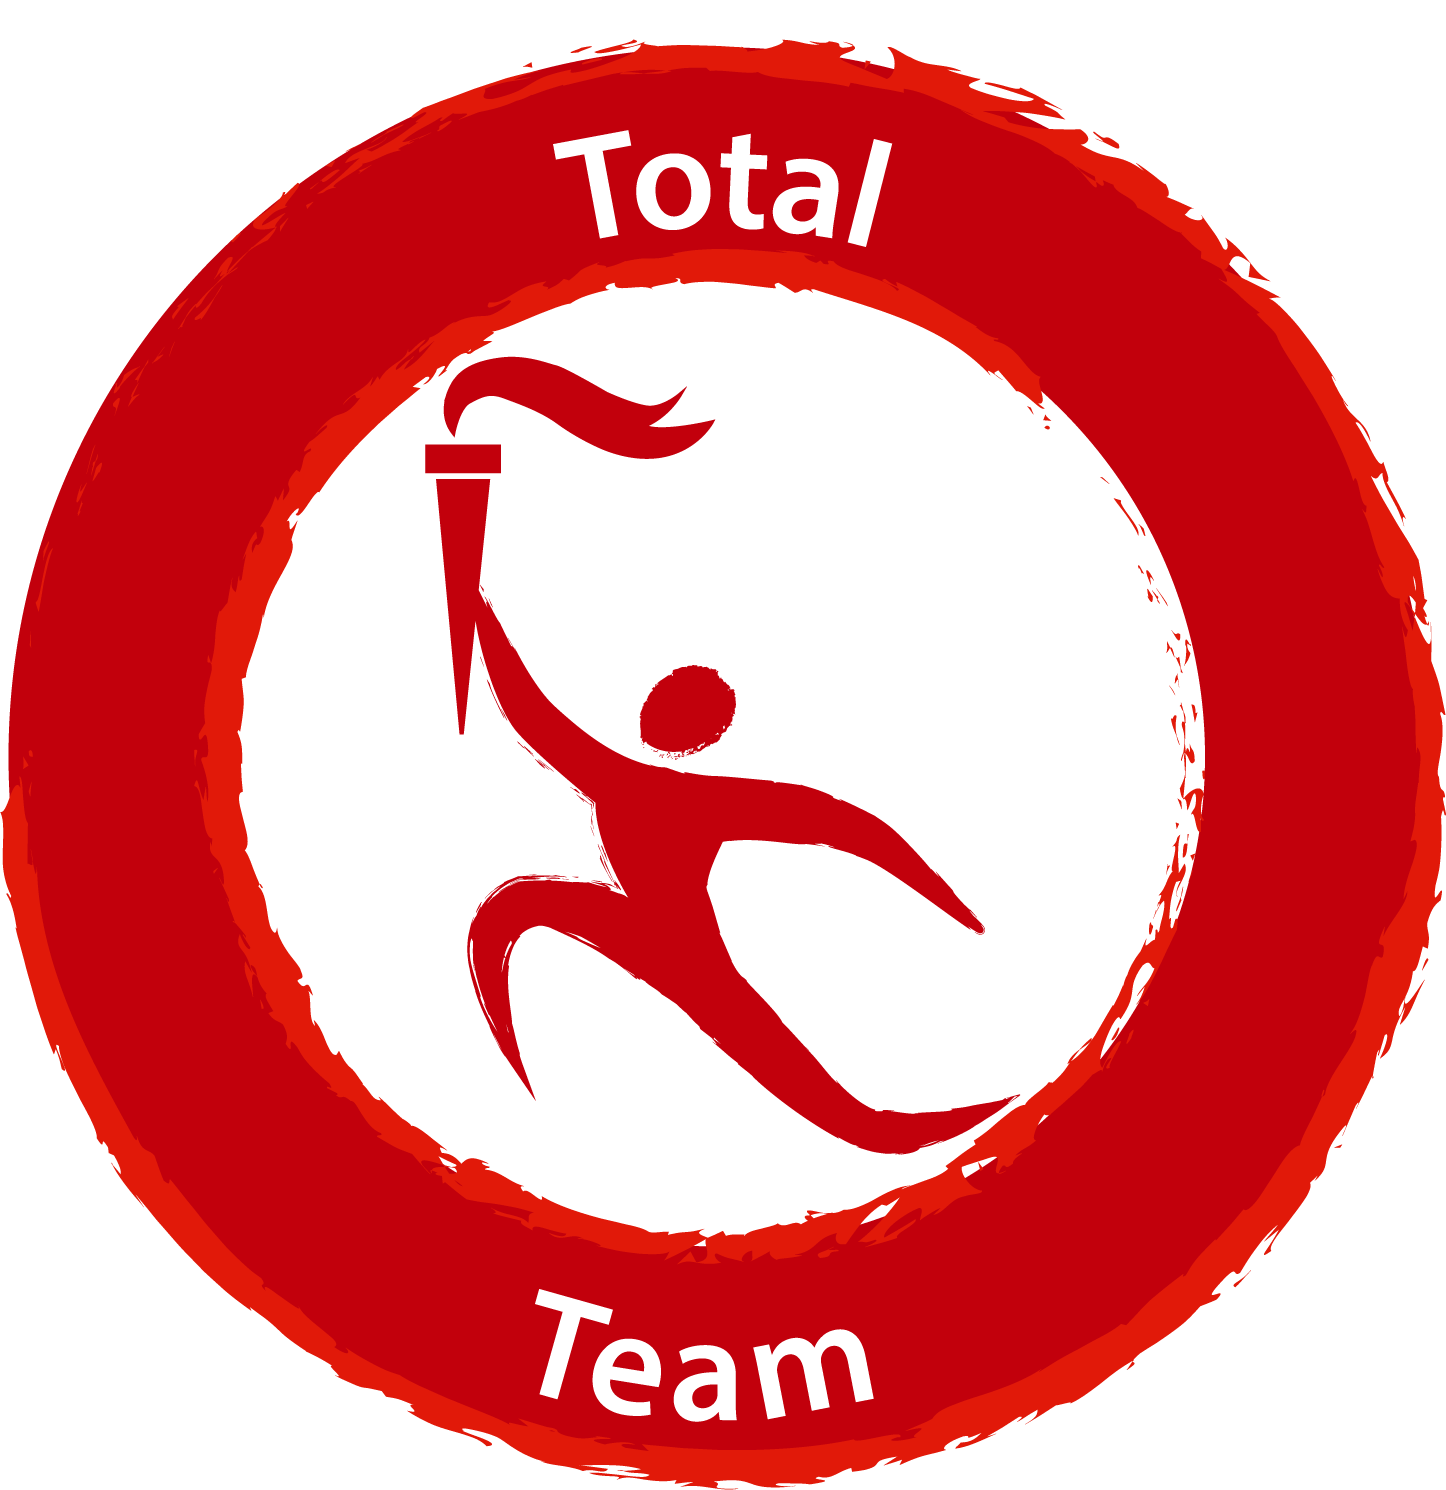 CLUB ESPORTIU TOTAL TEAM